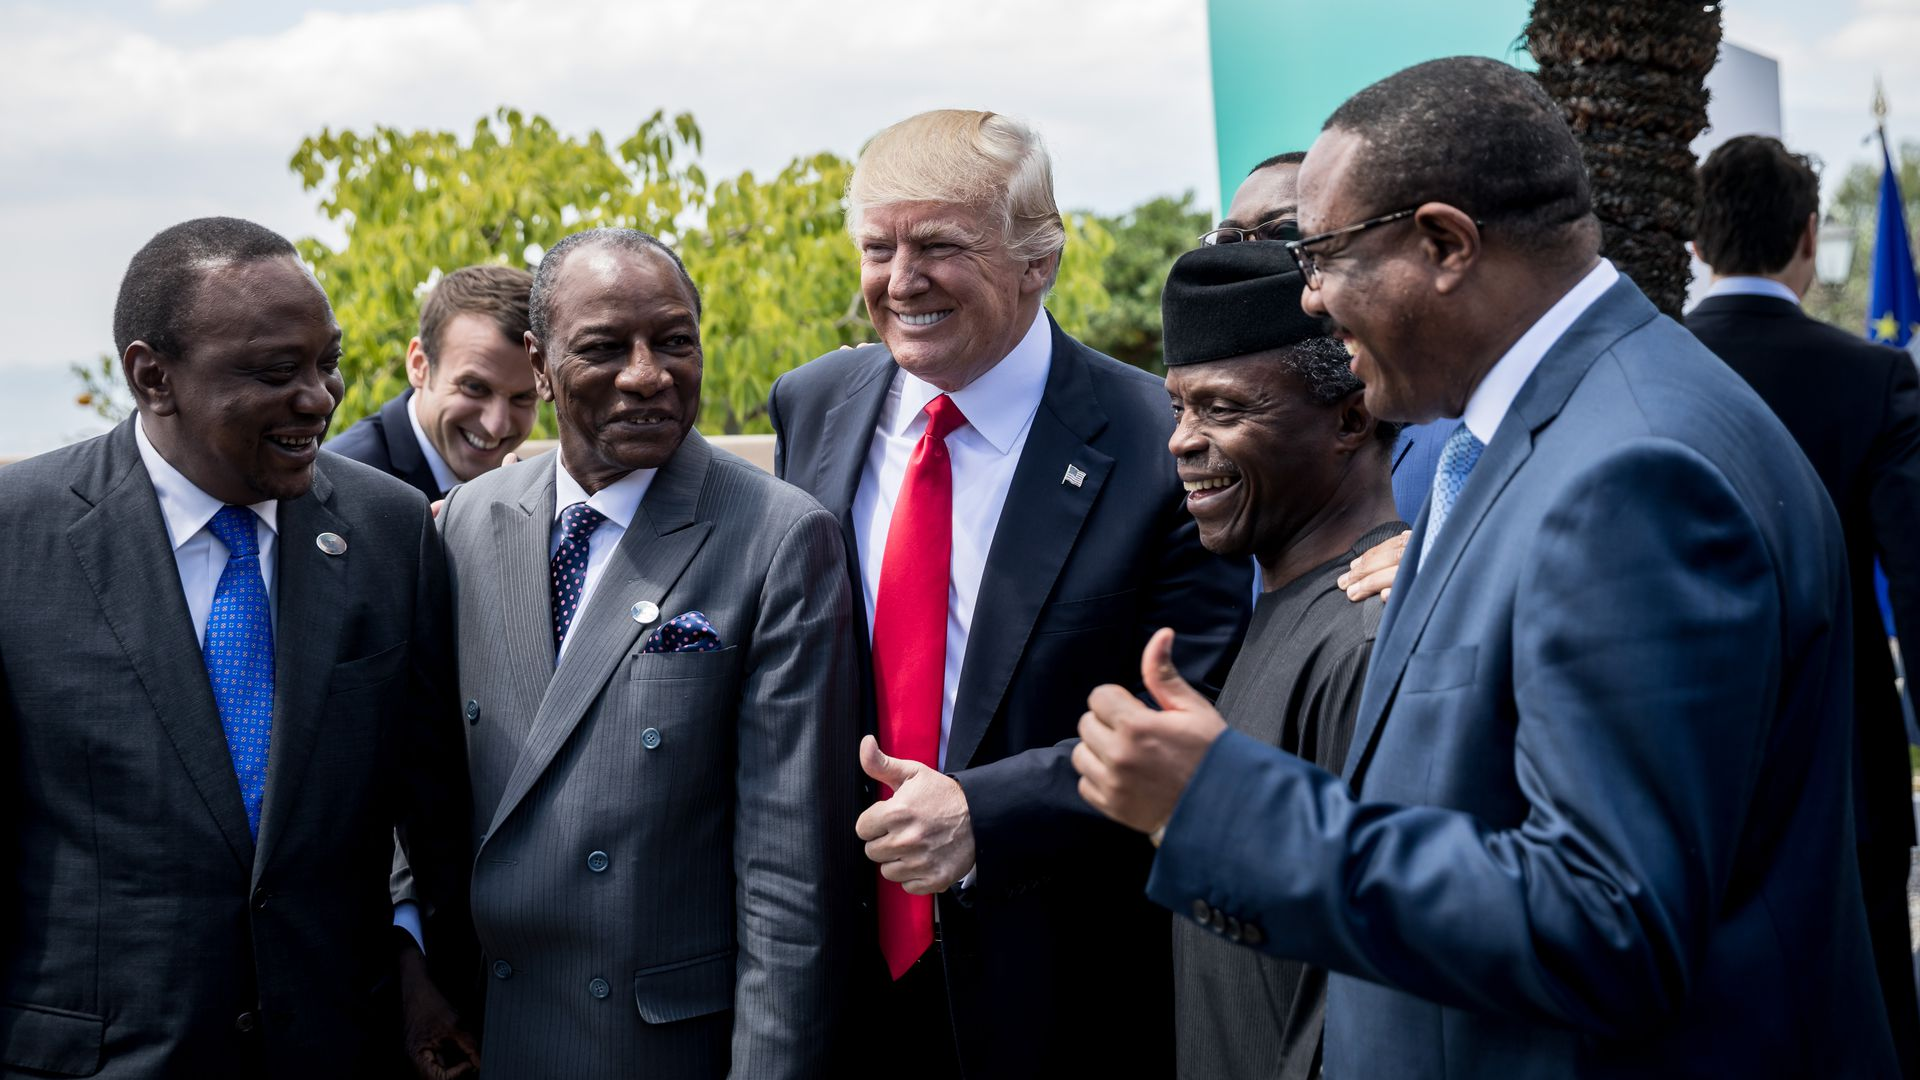 US President Donald Trump standing with Uhuru Kenyatt, Mahamadou Issoufou, Muhammadu Buhari and President of the African Development Bank.